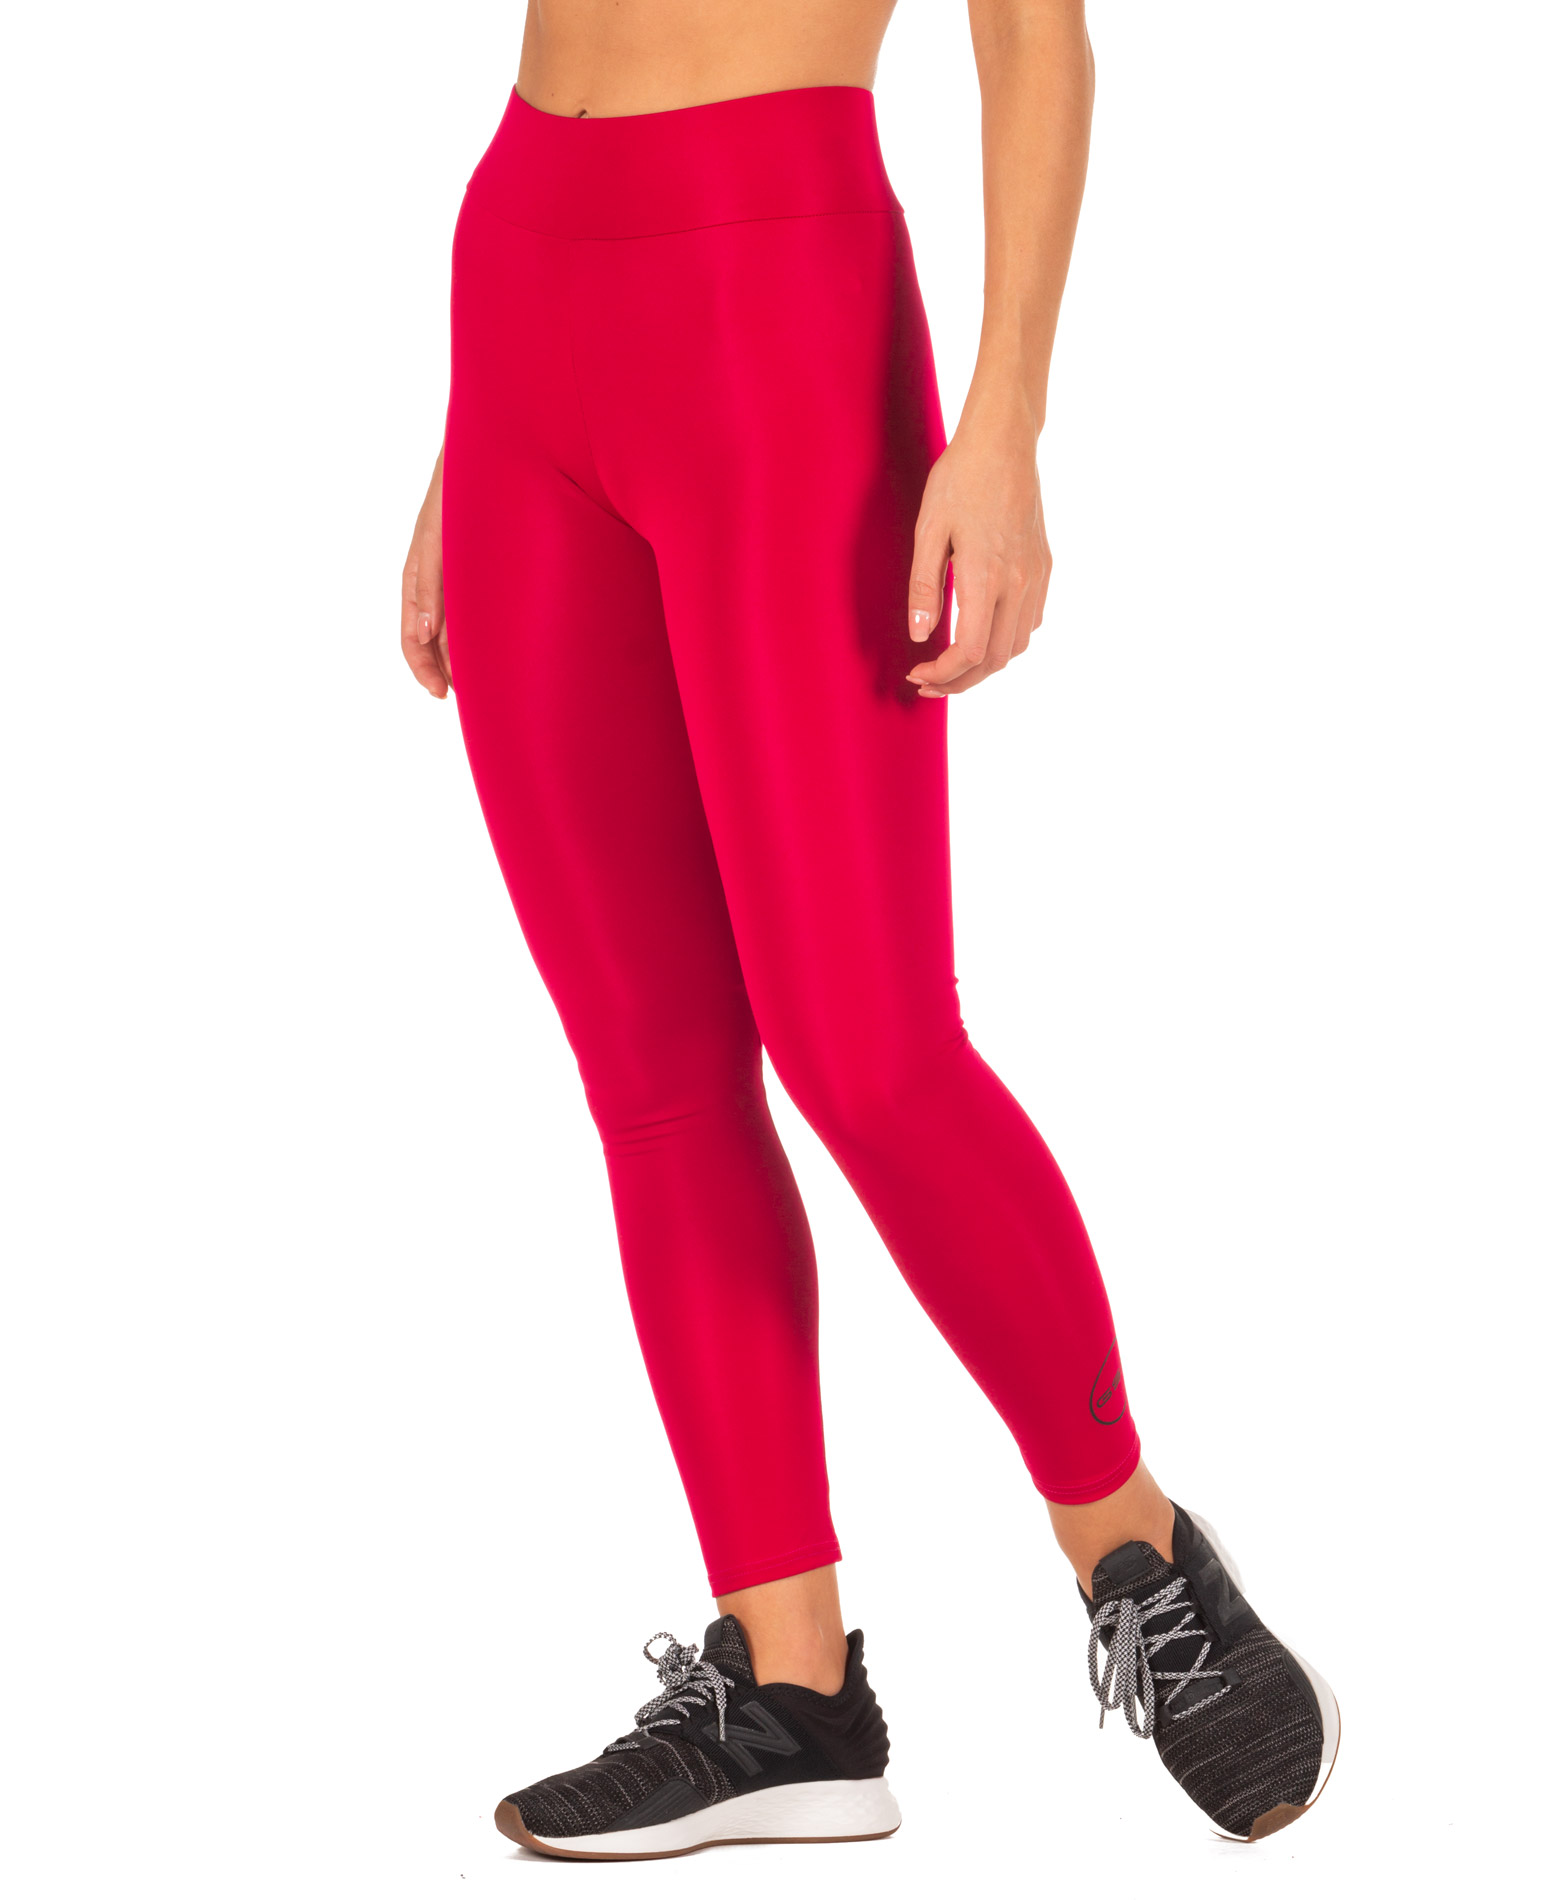 GSA HYDRO+ UP_FIT PERFORMANCE 17-28034-58 CHERRY RED Μπορντό